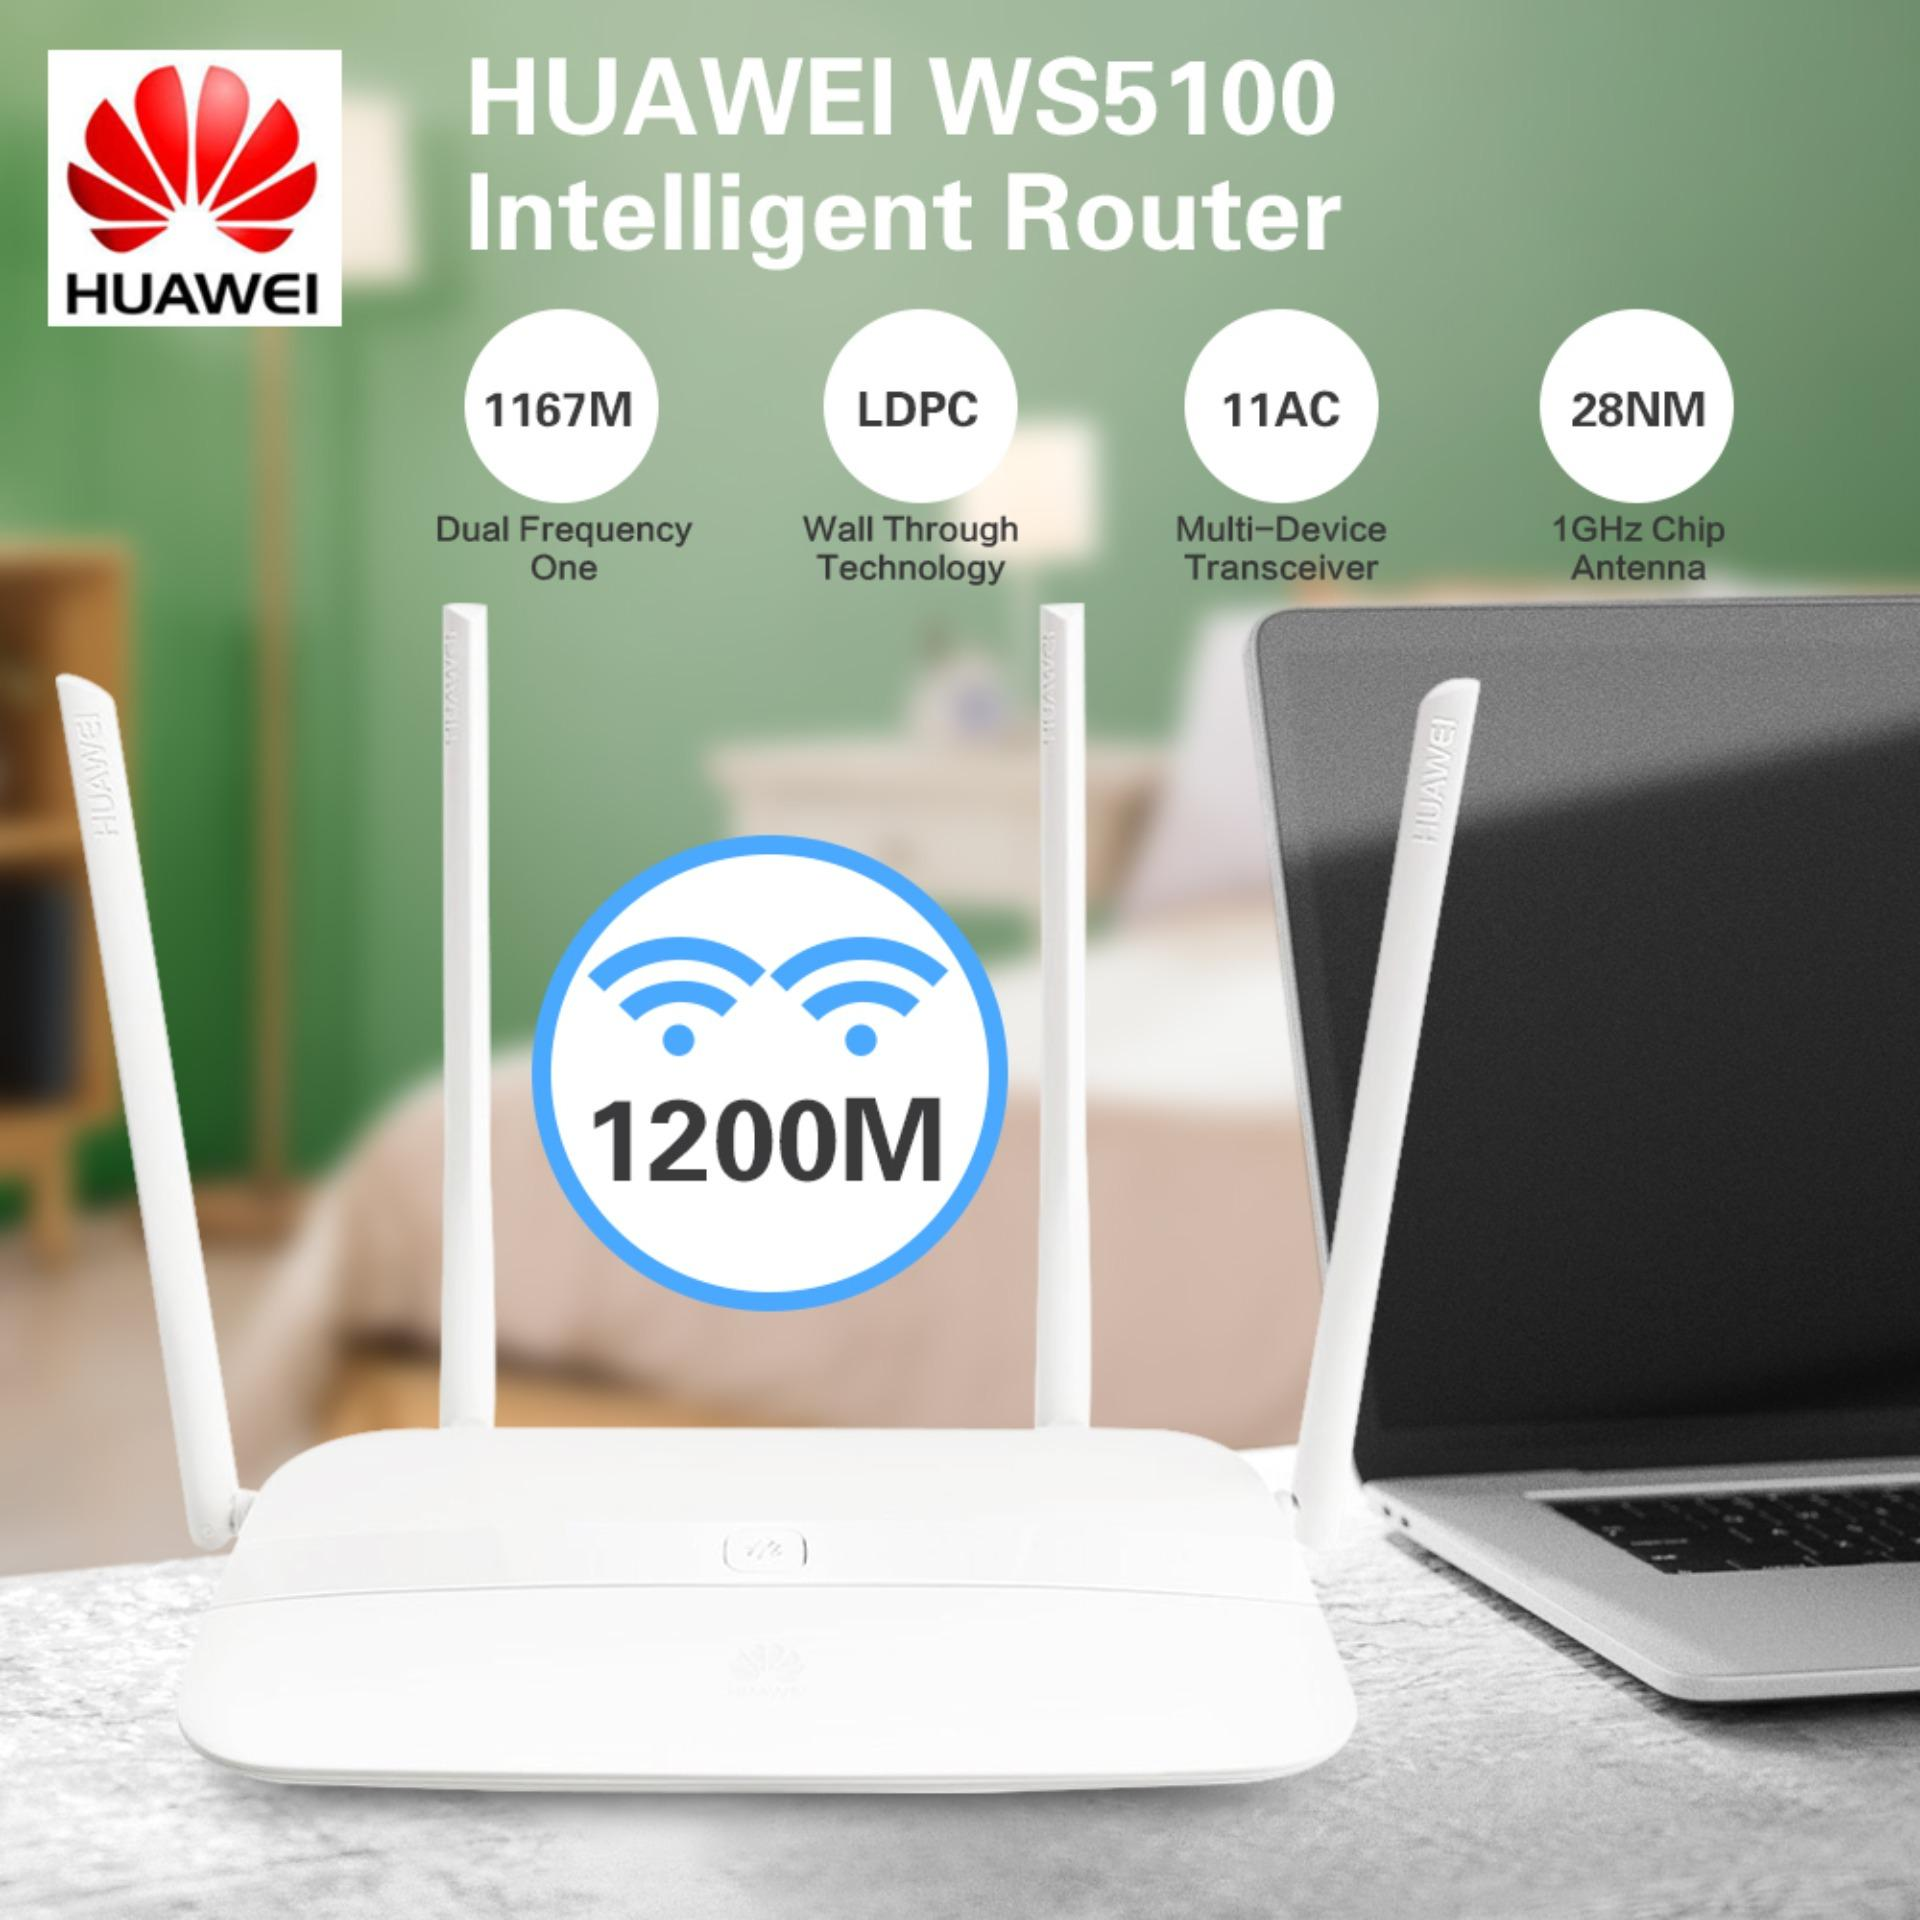 HUAWEI WS5100 Dual Band WiFi AC1200M Intelligent Router 5G Priority Support  IPv6